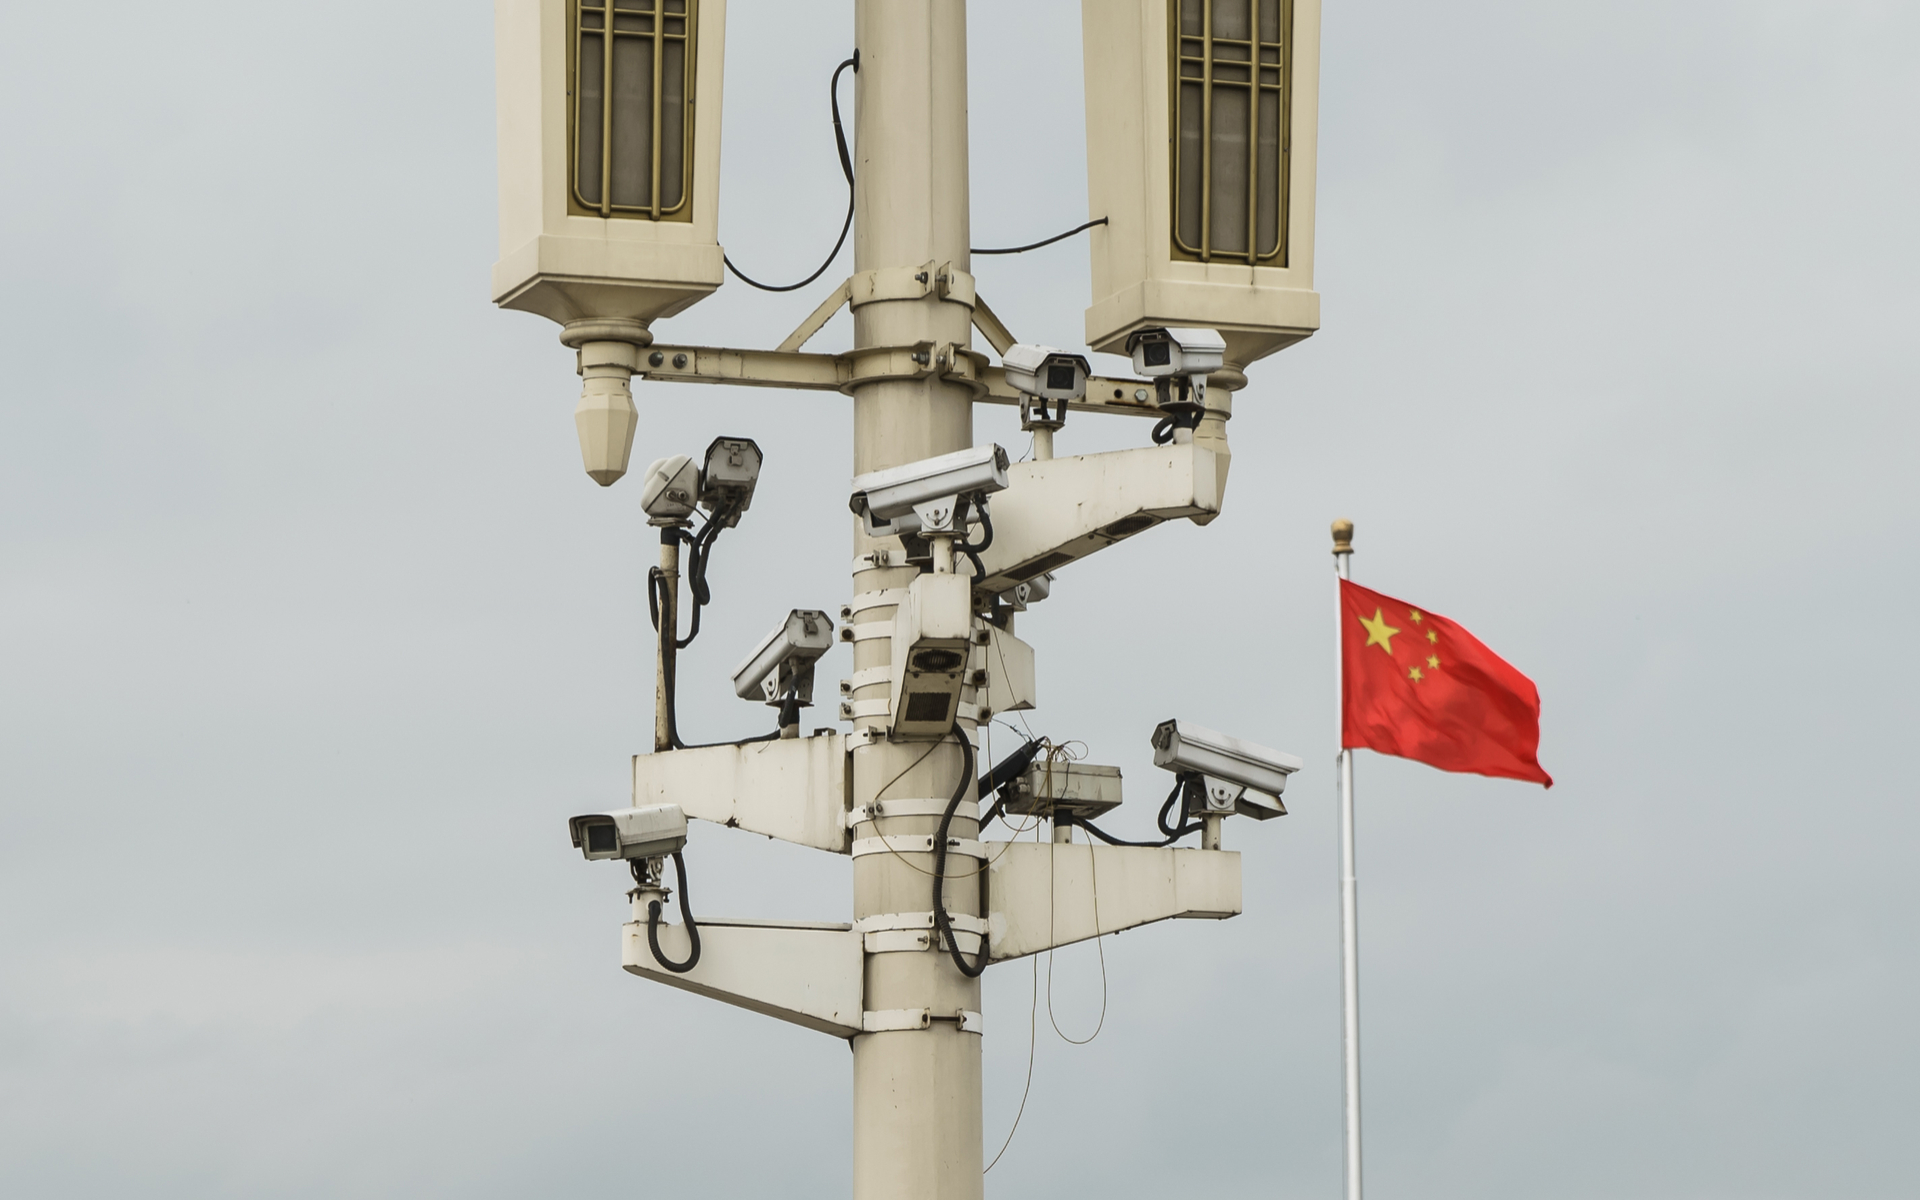 china wechat surveillance bitcoin